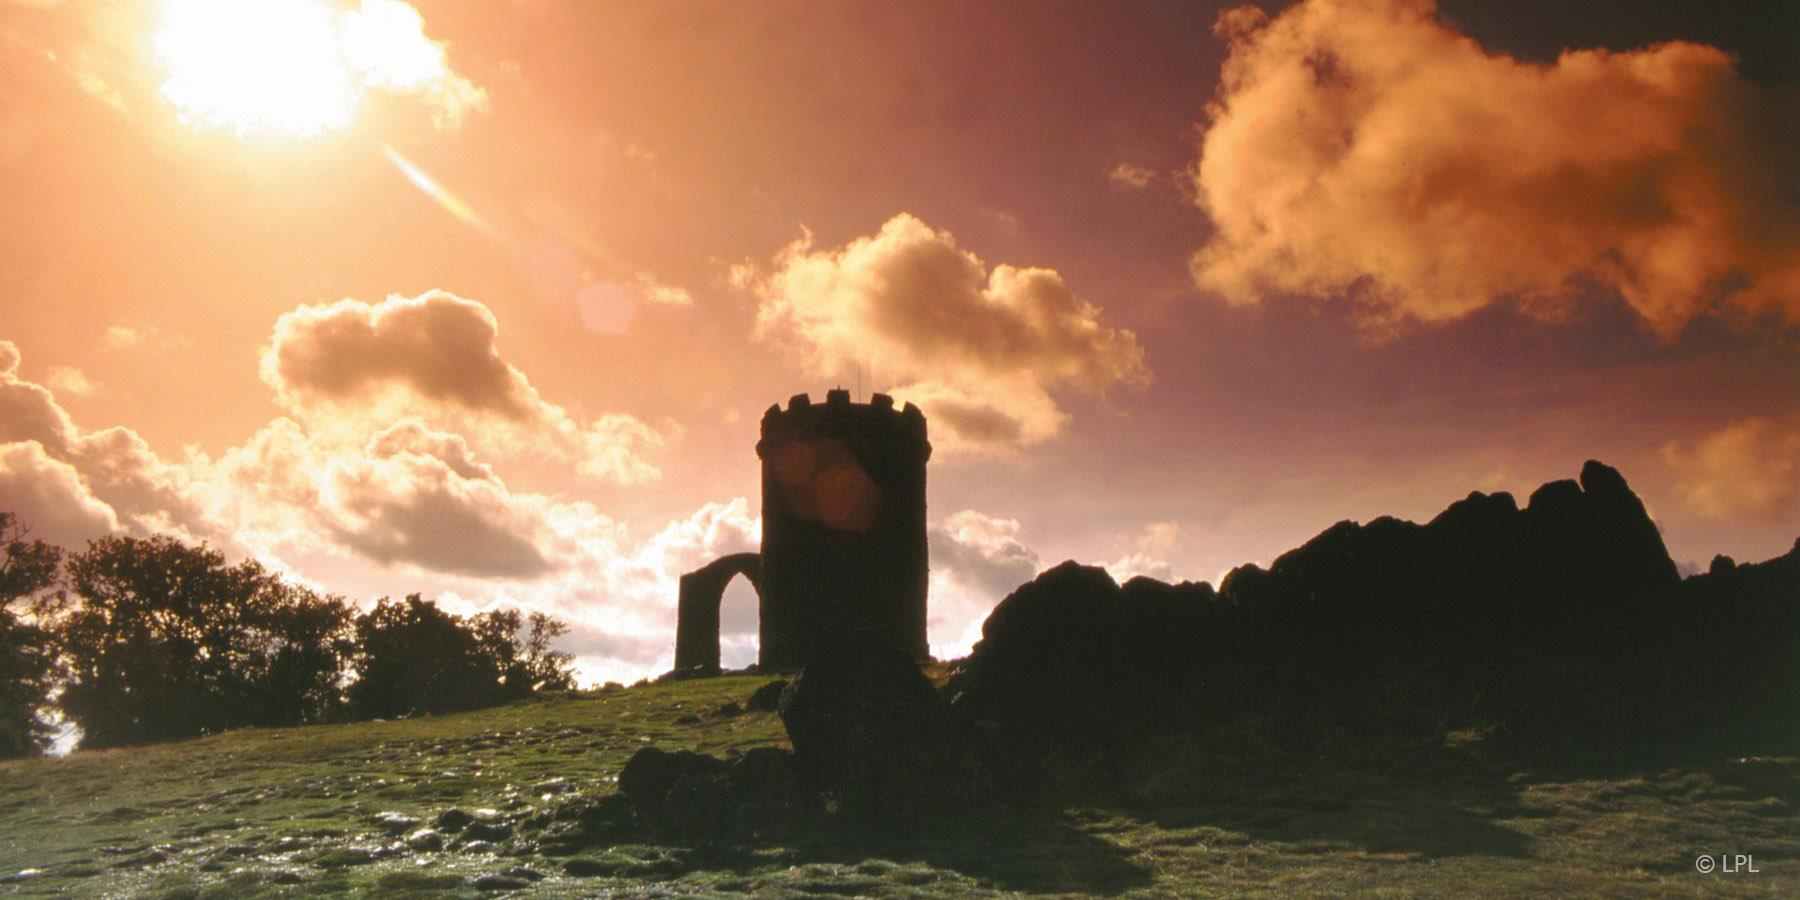 Get out of the city and discover the great scenery, attractions and market towns in the county of Leicestershire.